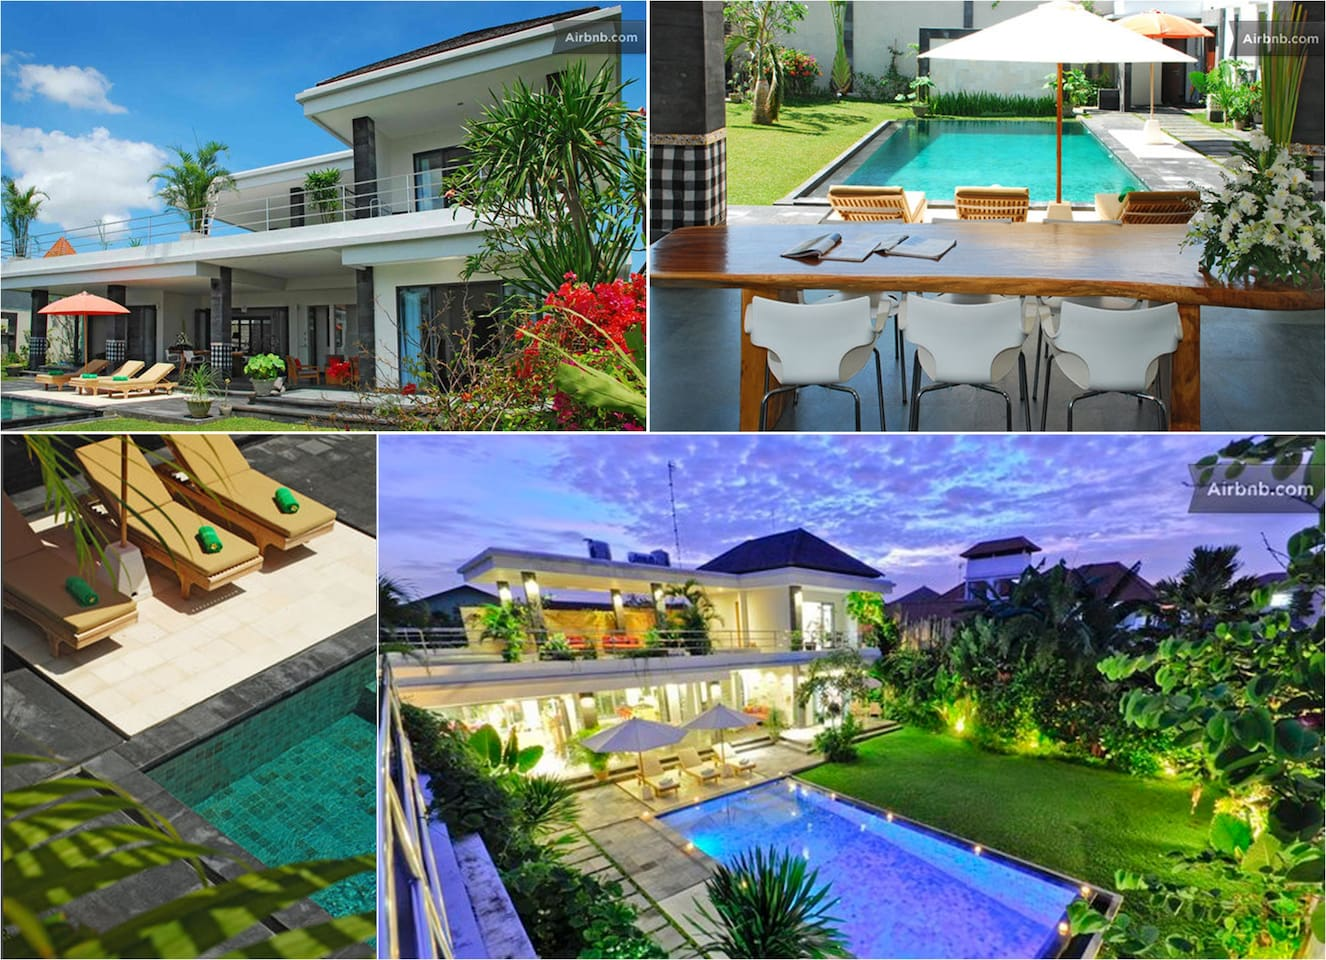 Modern villa situated in tropical garden providing excellent B&B services.